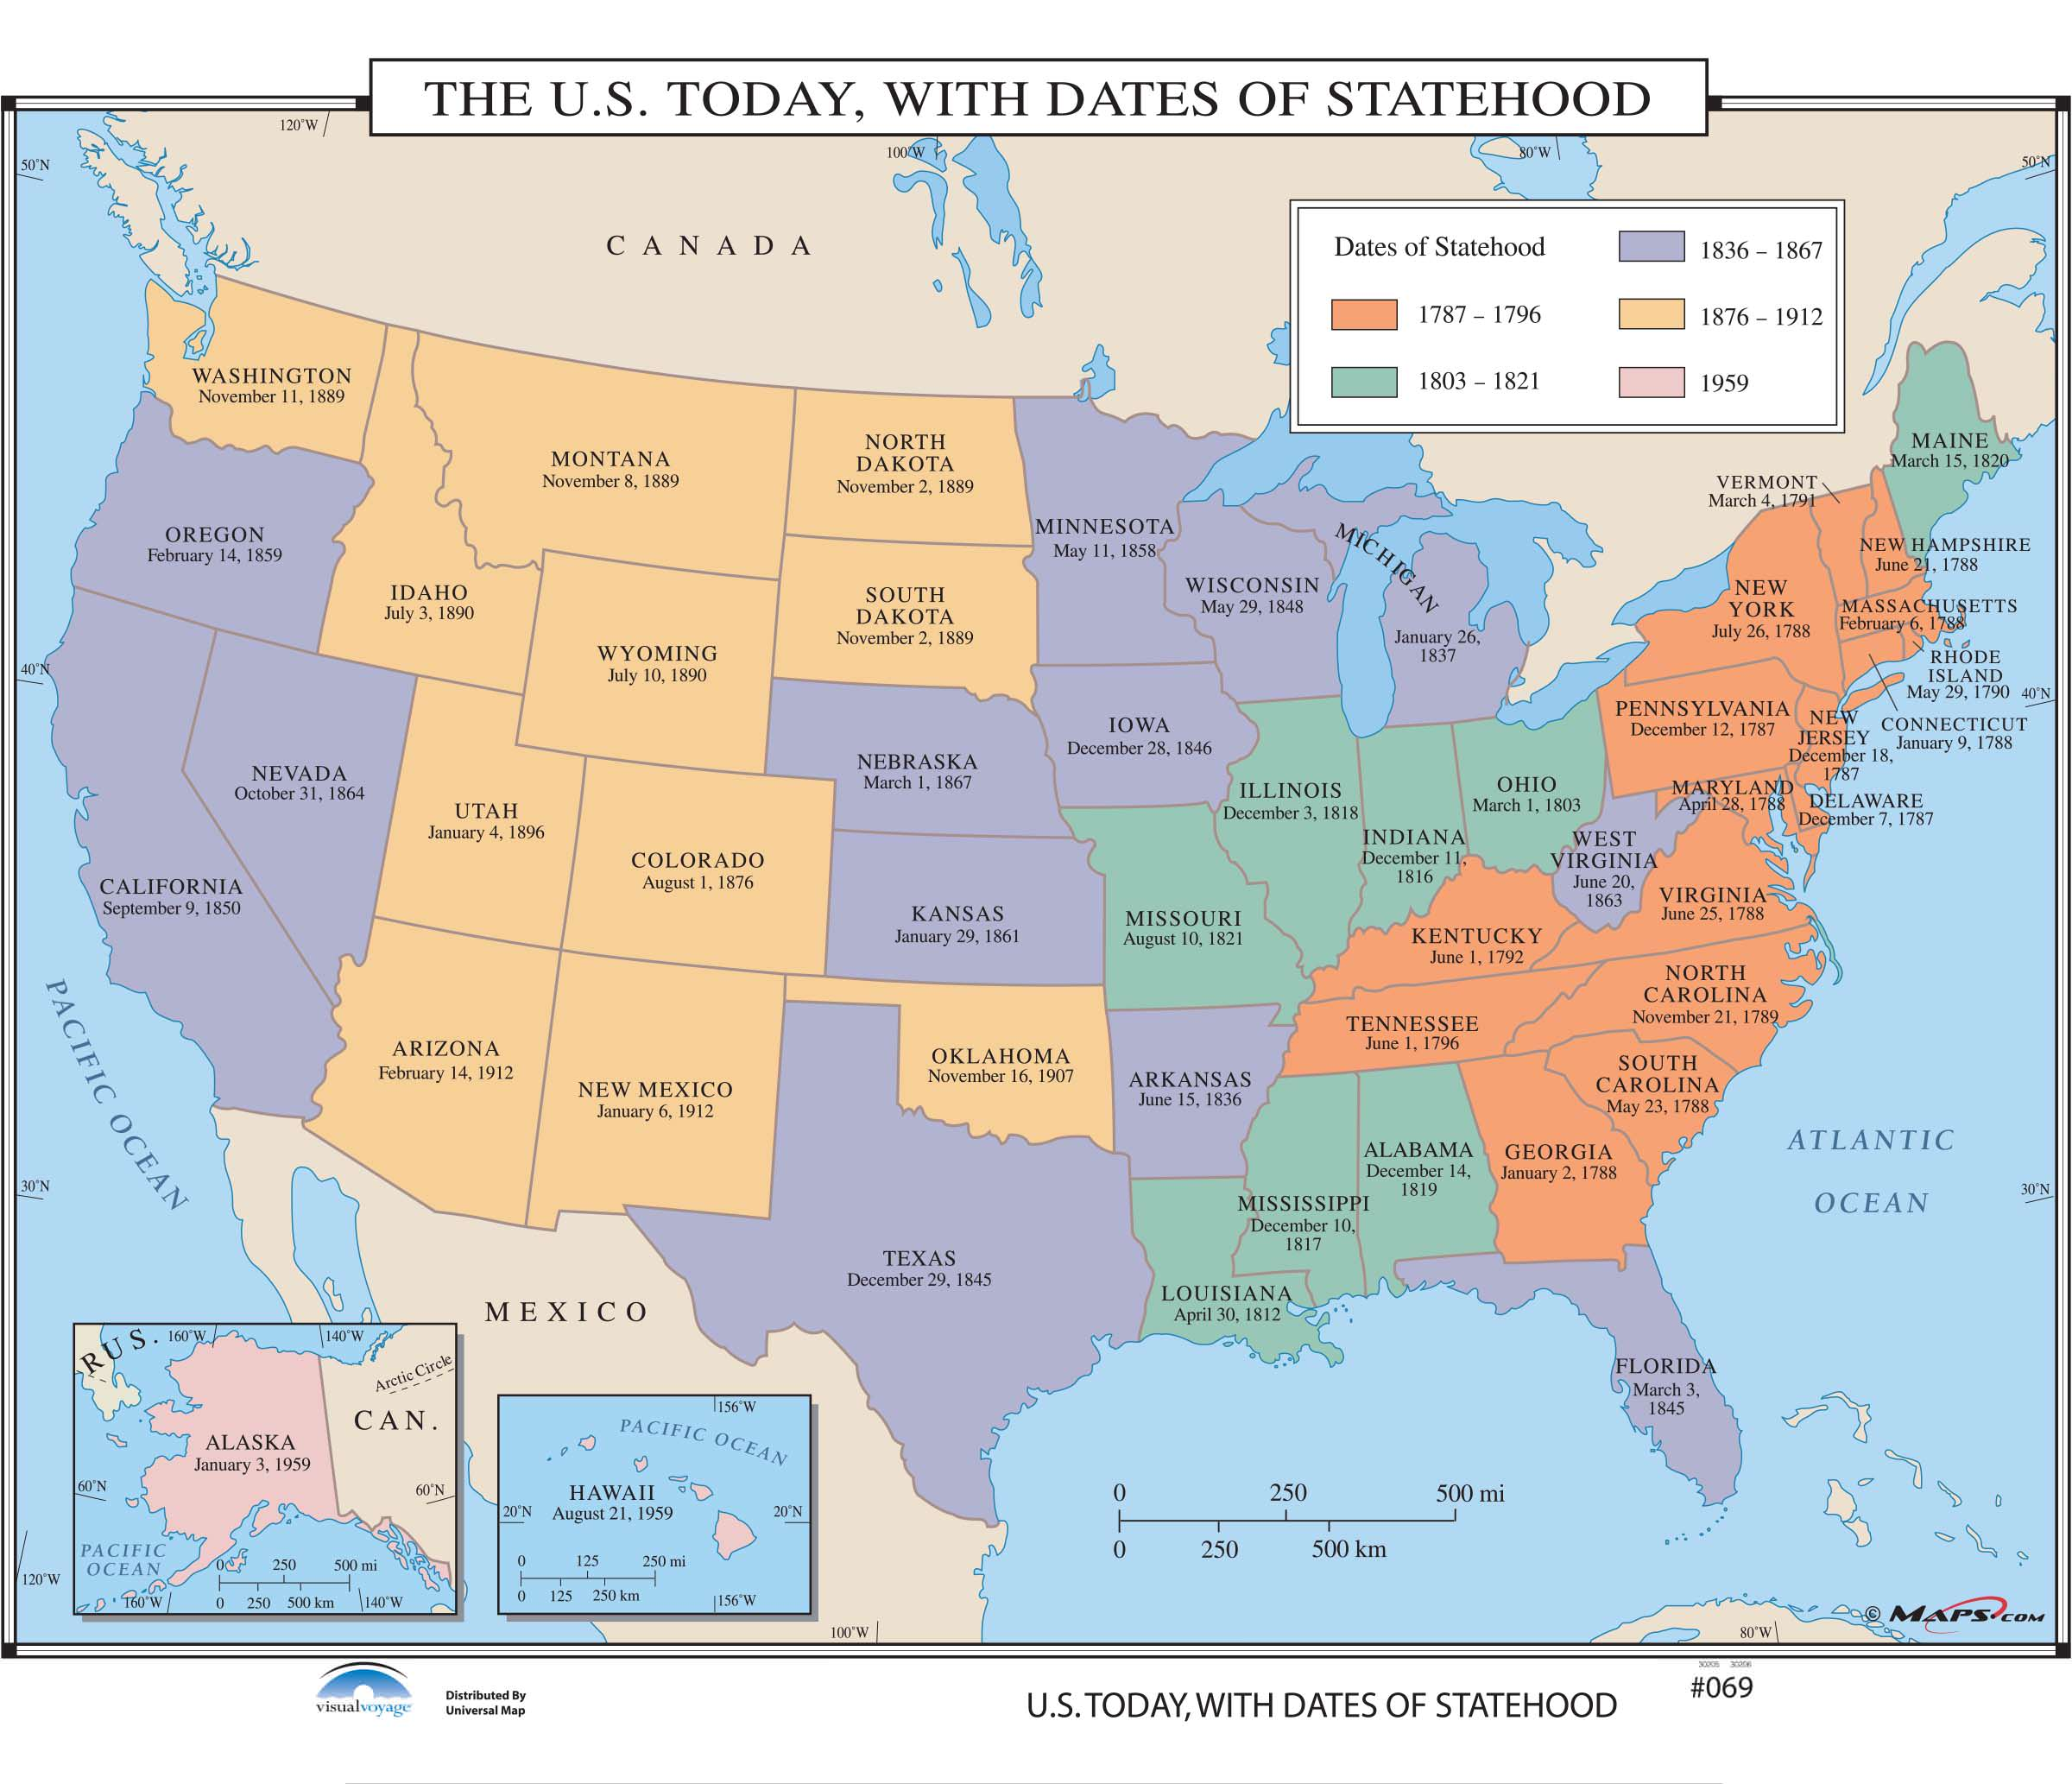 069 the us today with dates of statehood